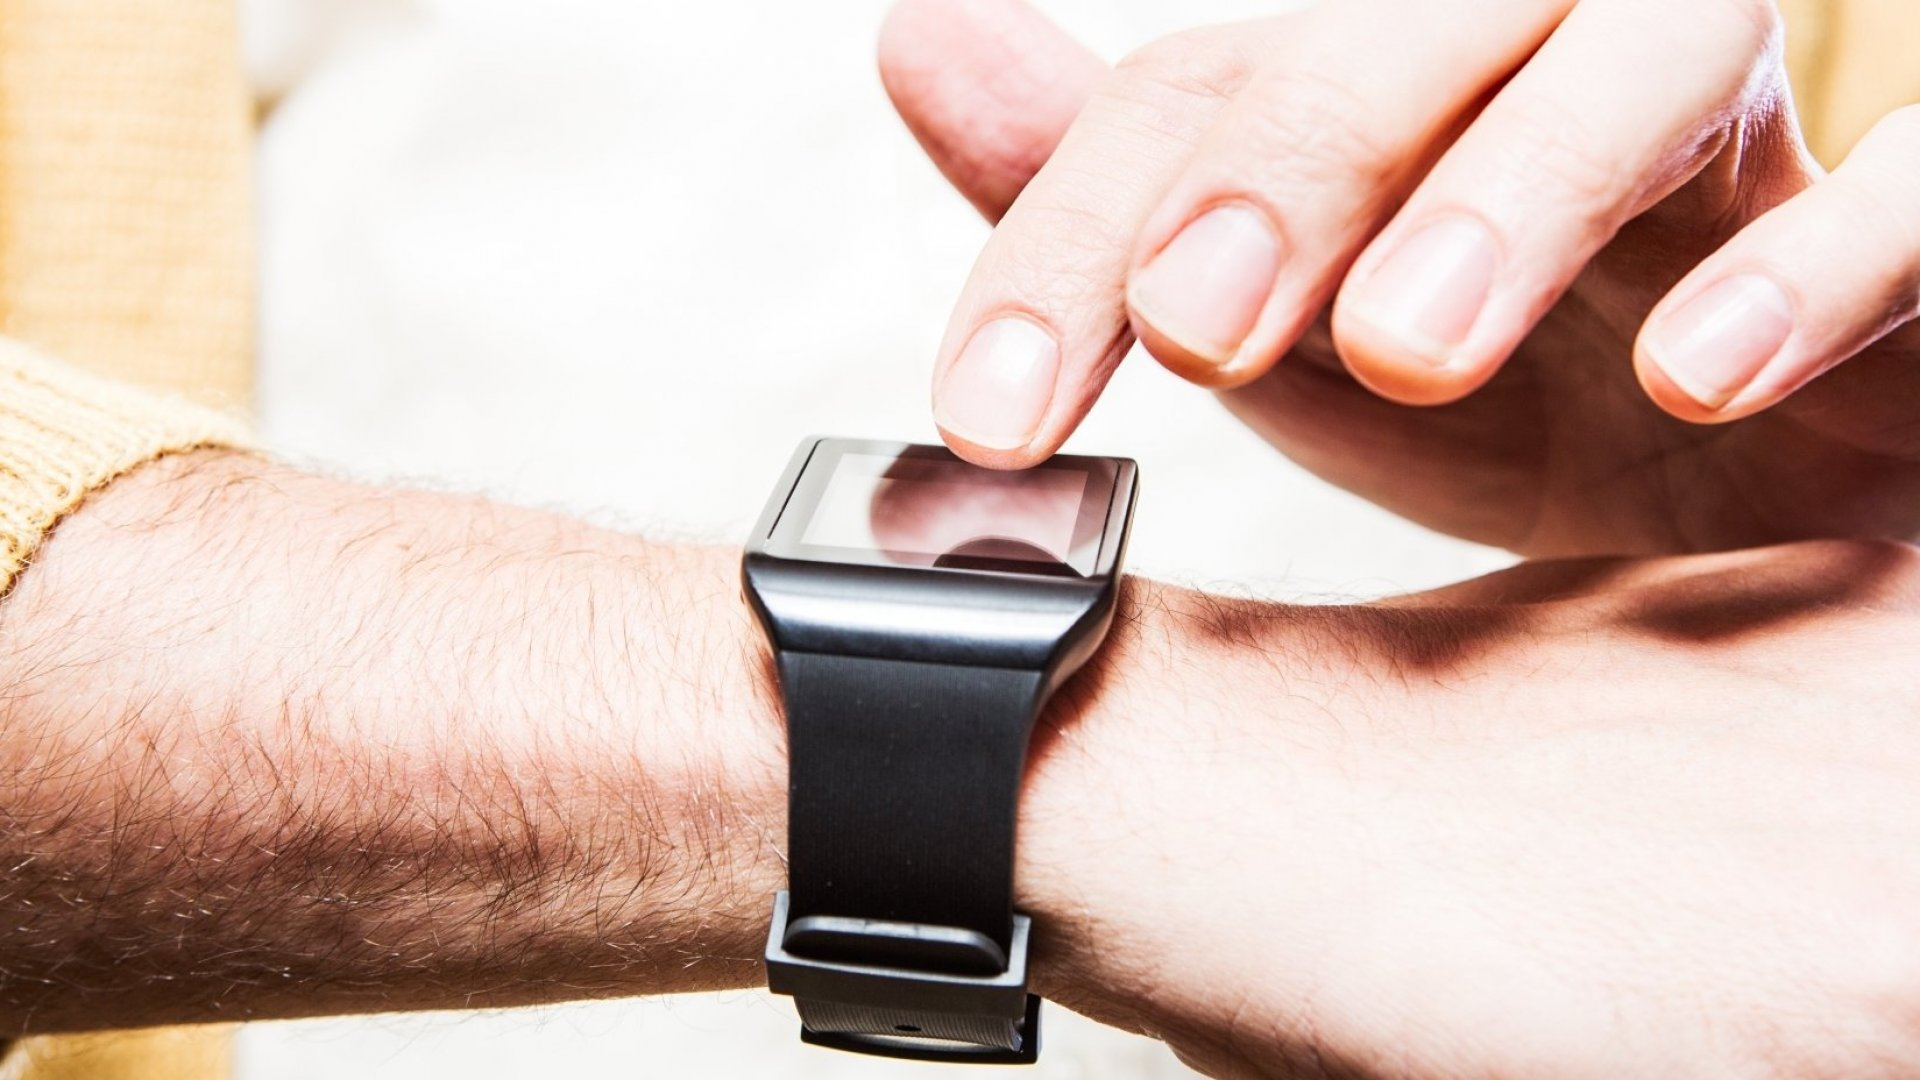 Researchers Develop a Smartwatch for the Socially Anxious